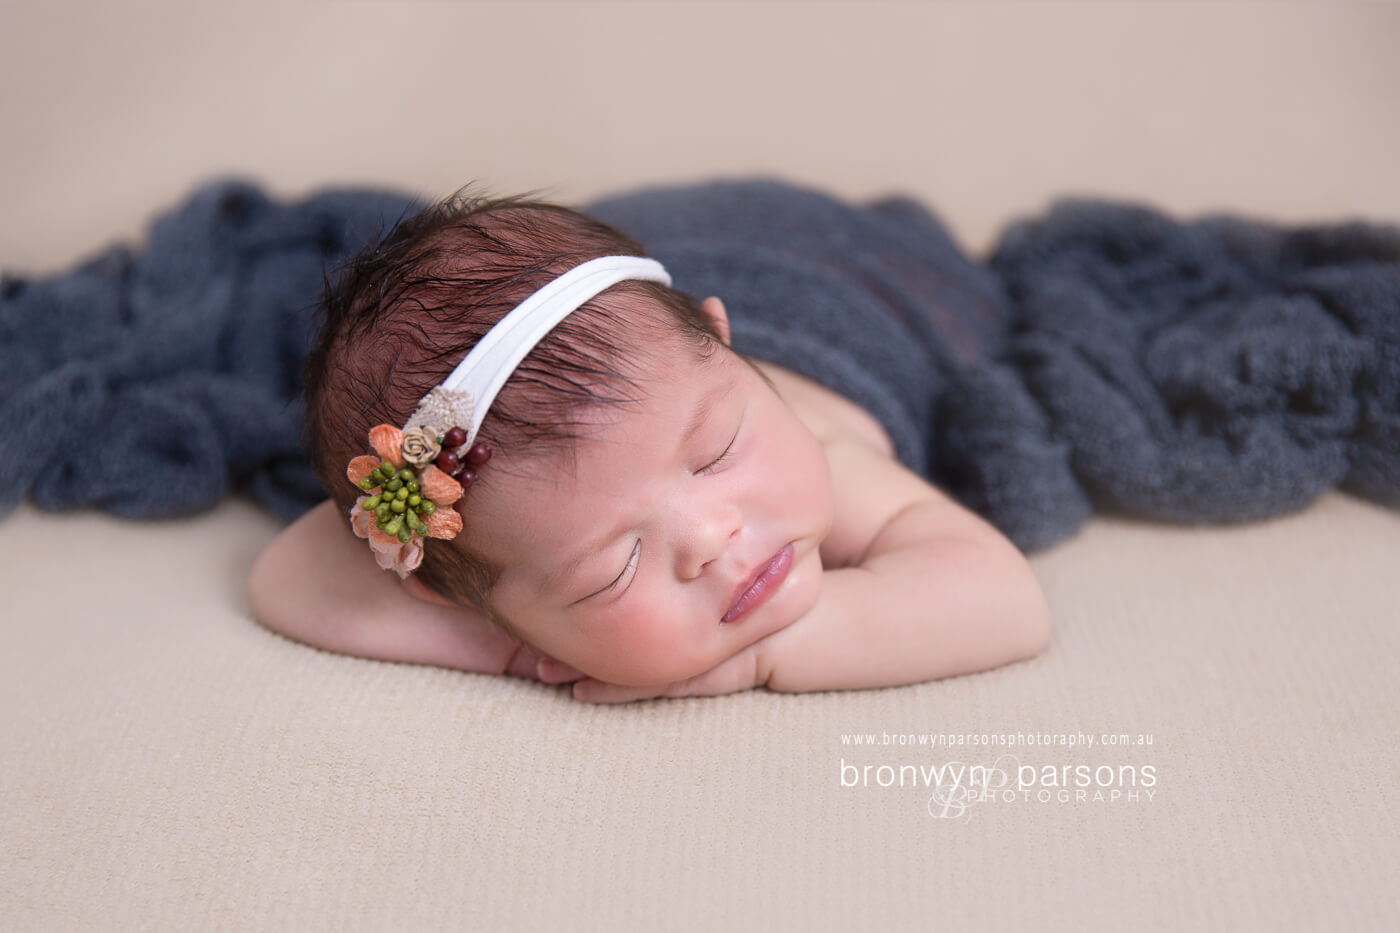 Newborn photography bronwyn parsons photography